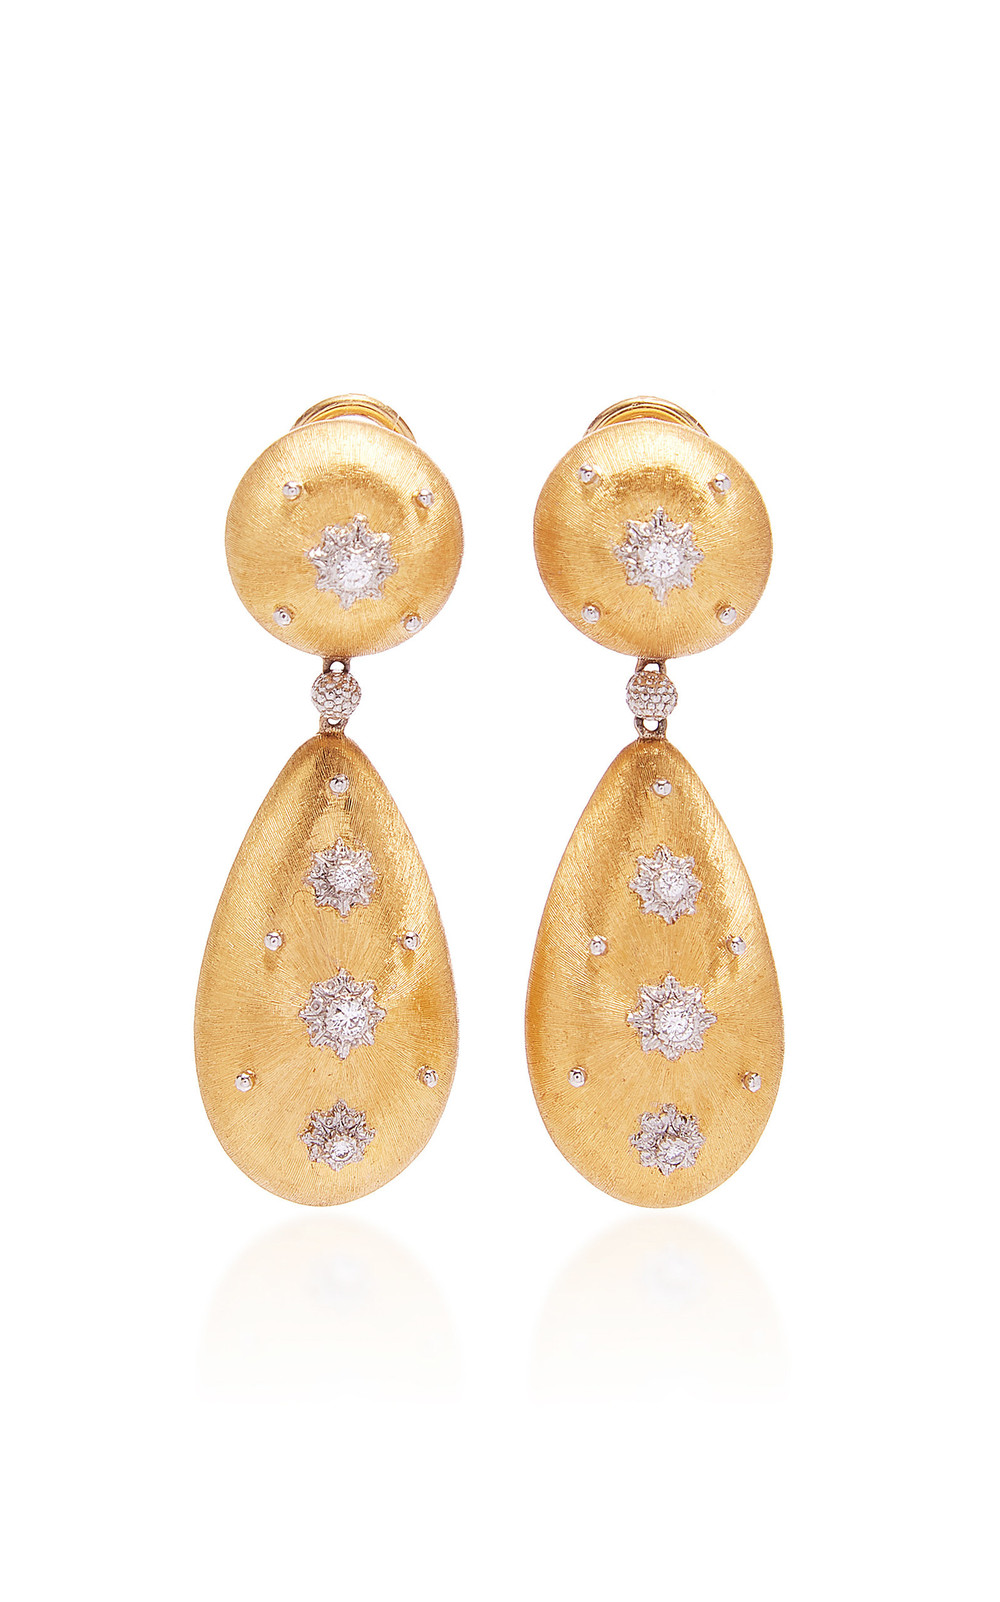 Buccellati Macri Pendant Earrings in gold